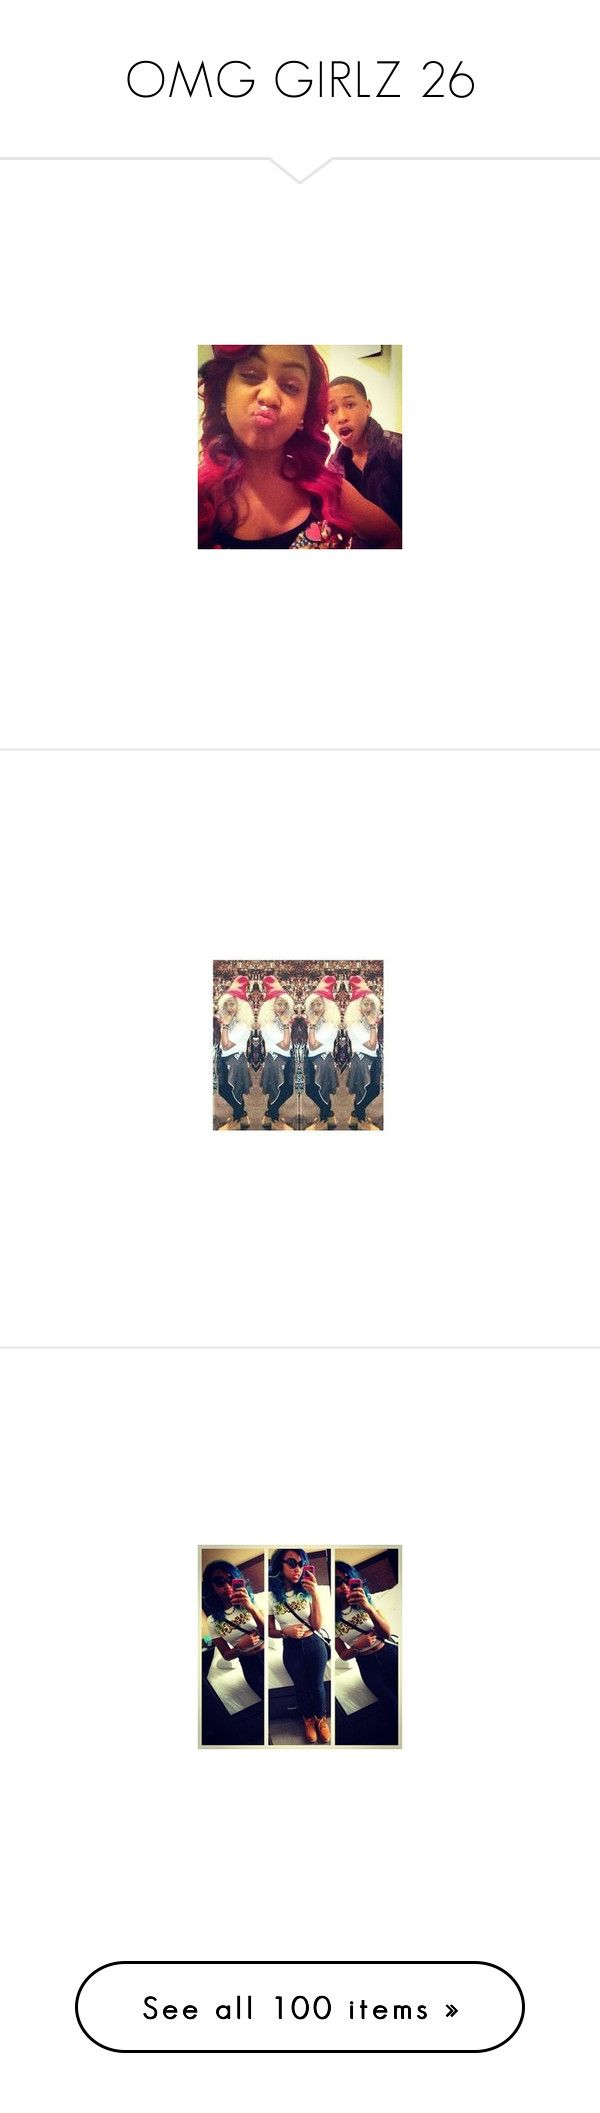 """""""OMG GIRLZ 26"""" by omggirlz900 ❤ liked on Polyvore featuring zonnique, bahja, bahja. and omg"""